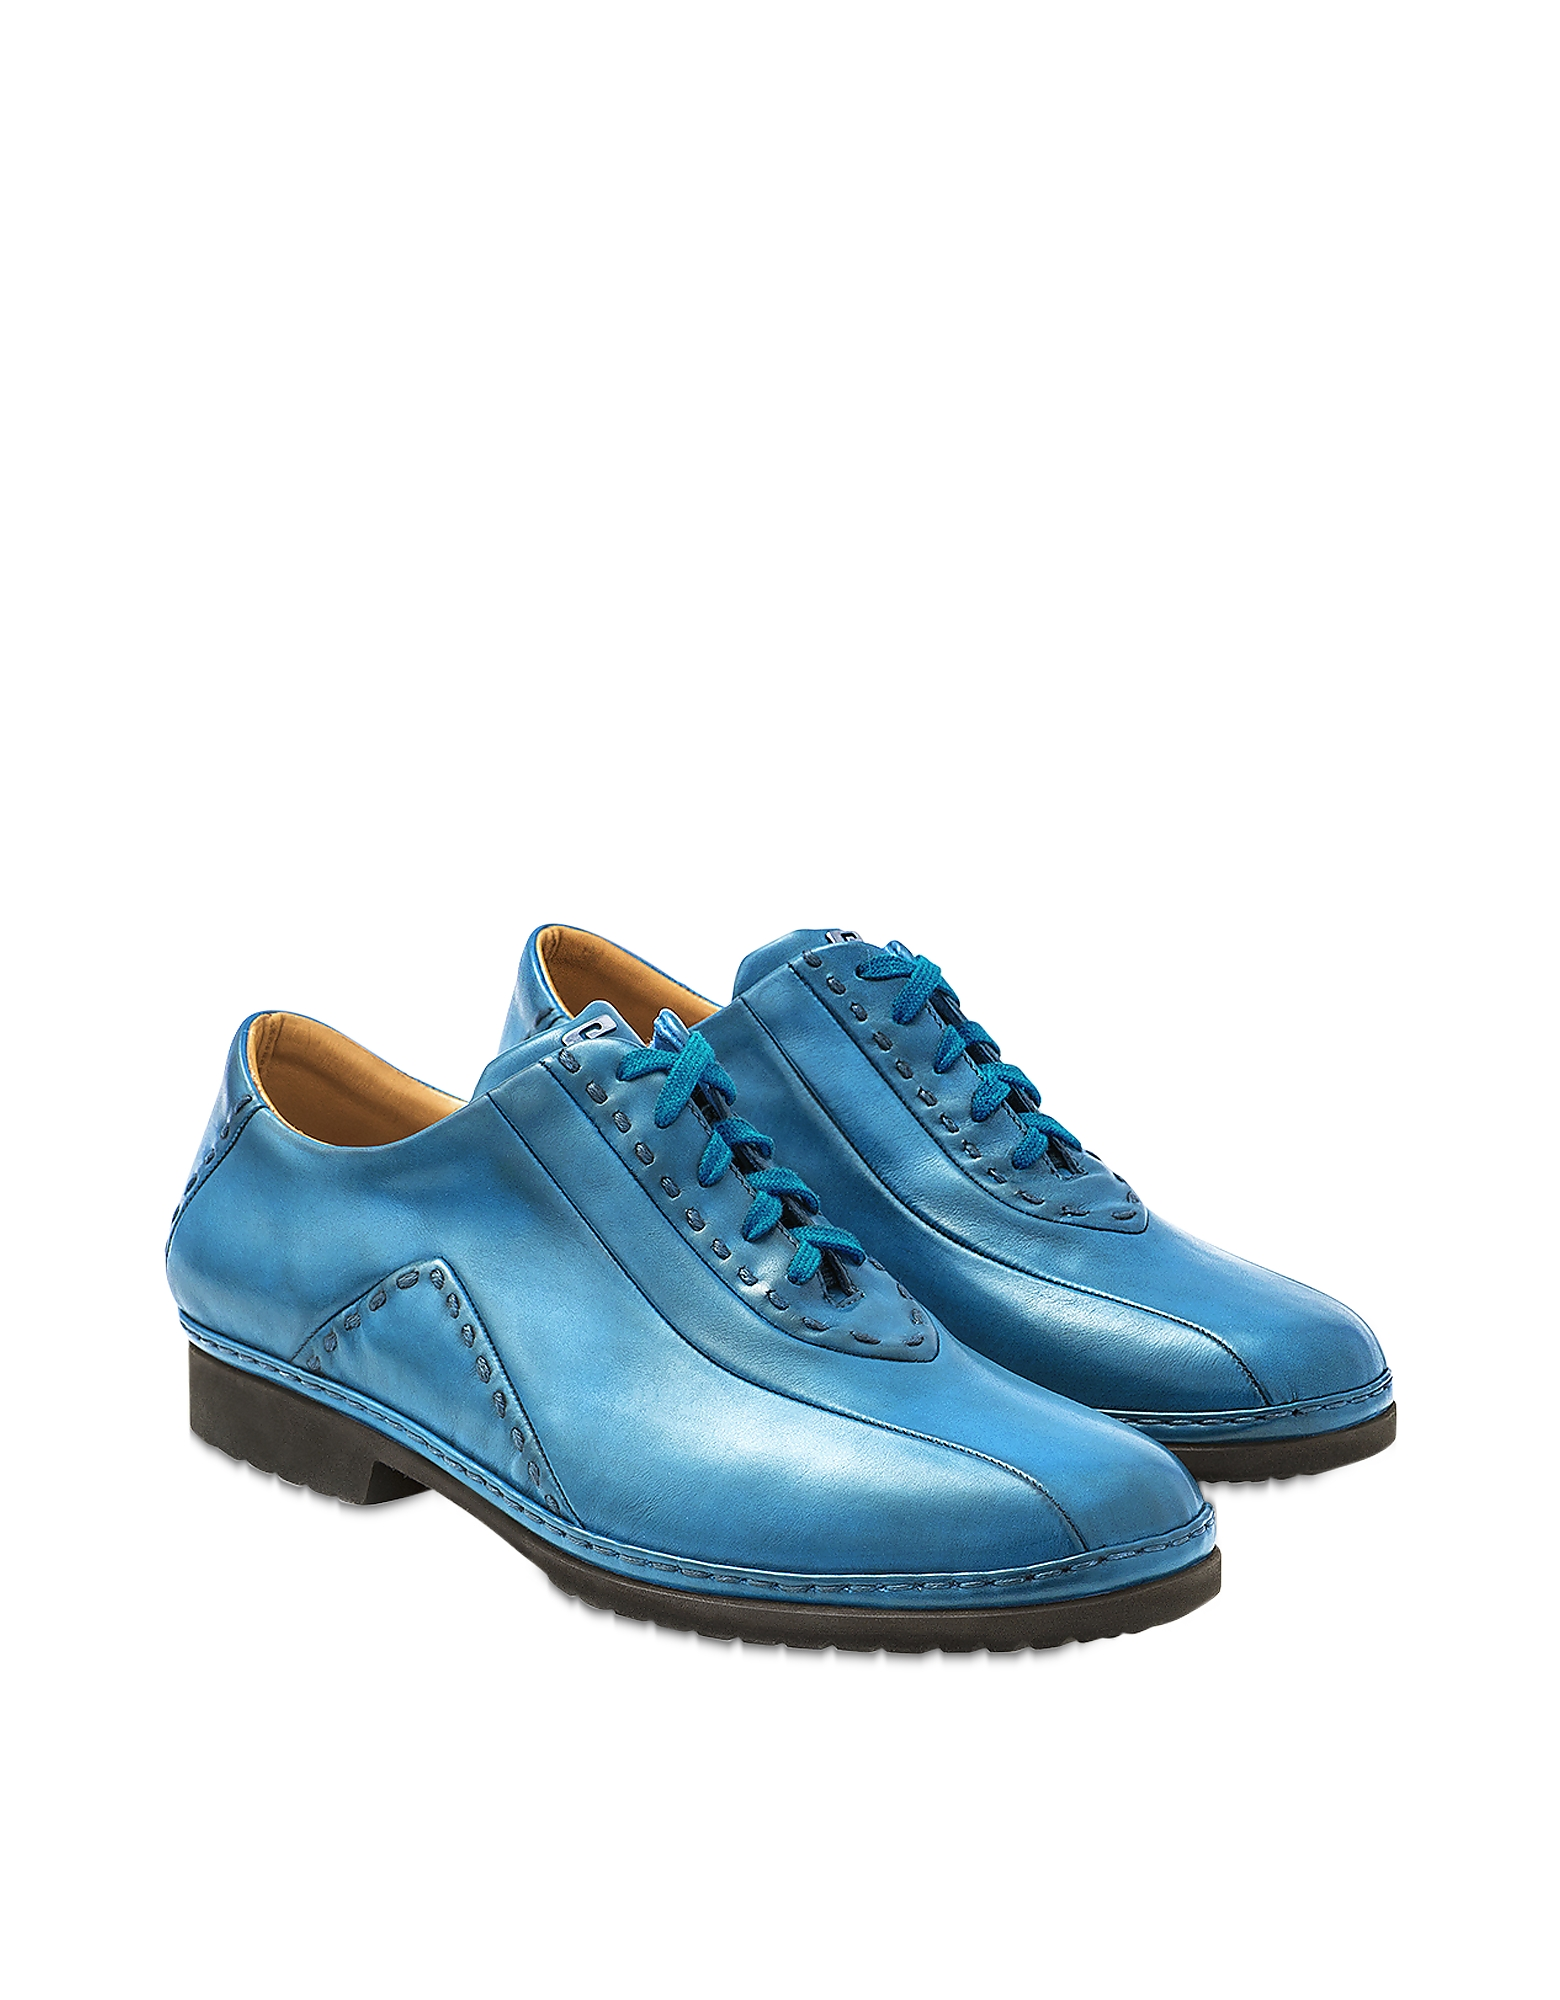 Sky Blue Italian Hand Made Calf Leather Lace-up Shoes